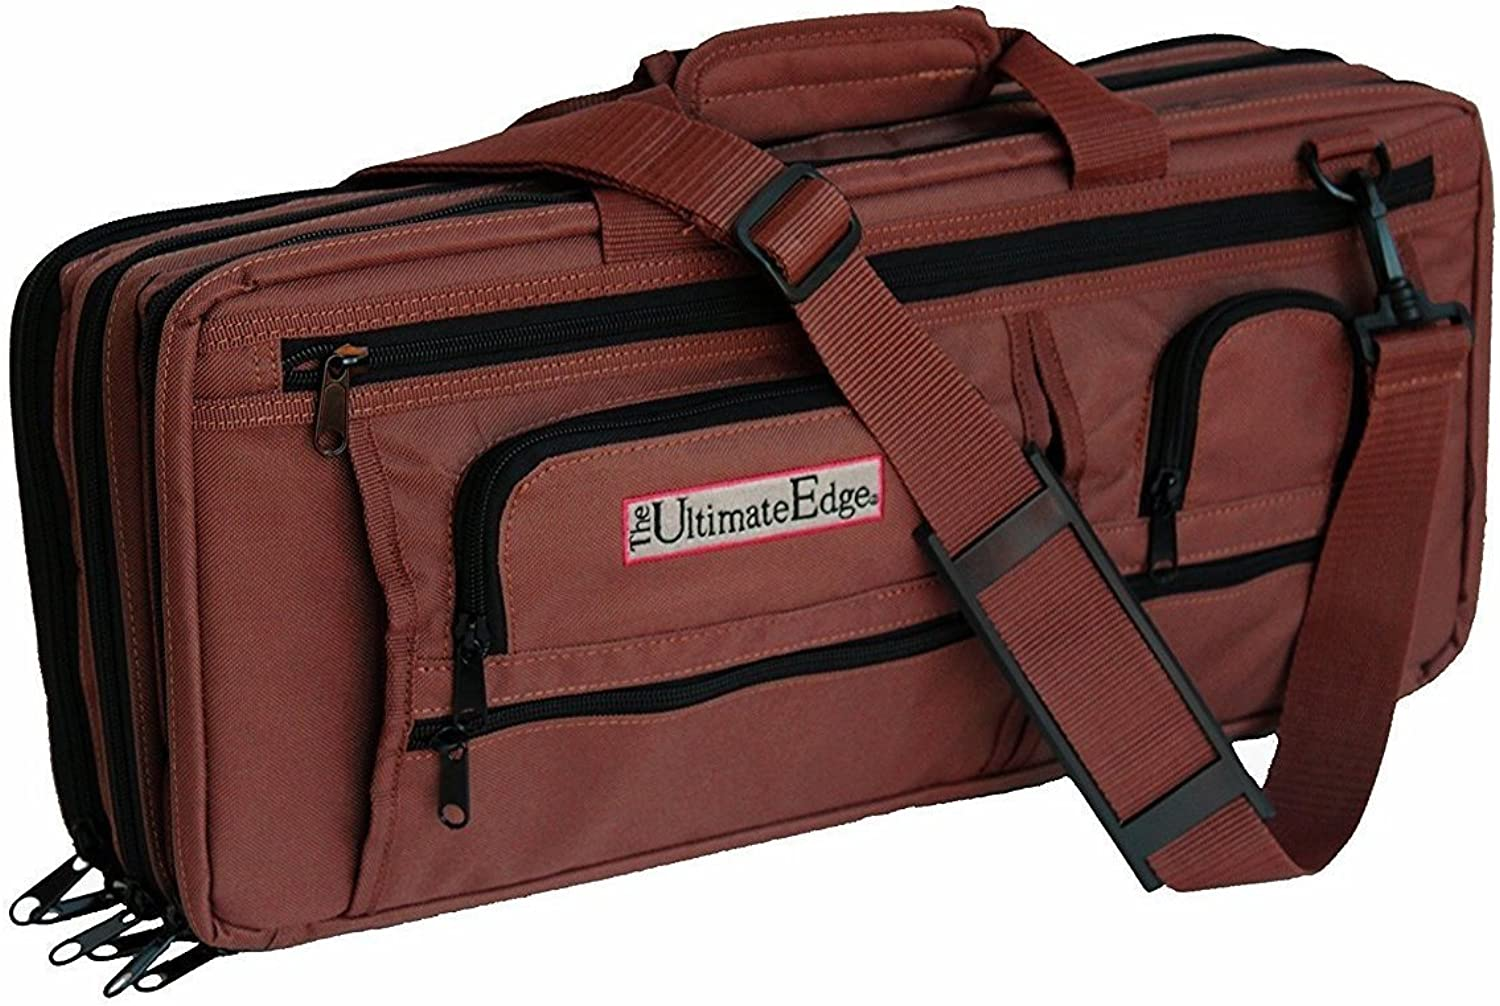 The Ultimate Edge 2001-EDCH Deluxe Chef Knife Case, Chocolate